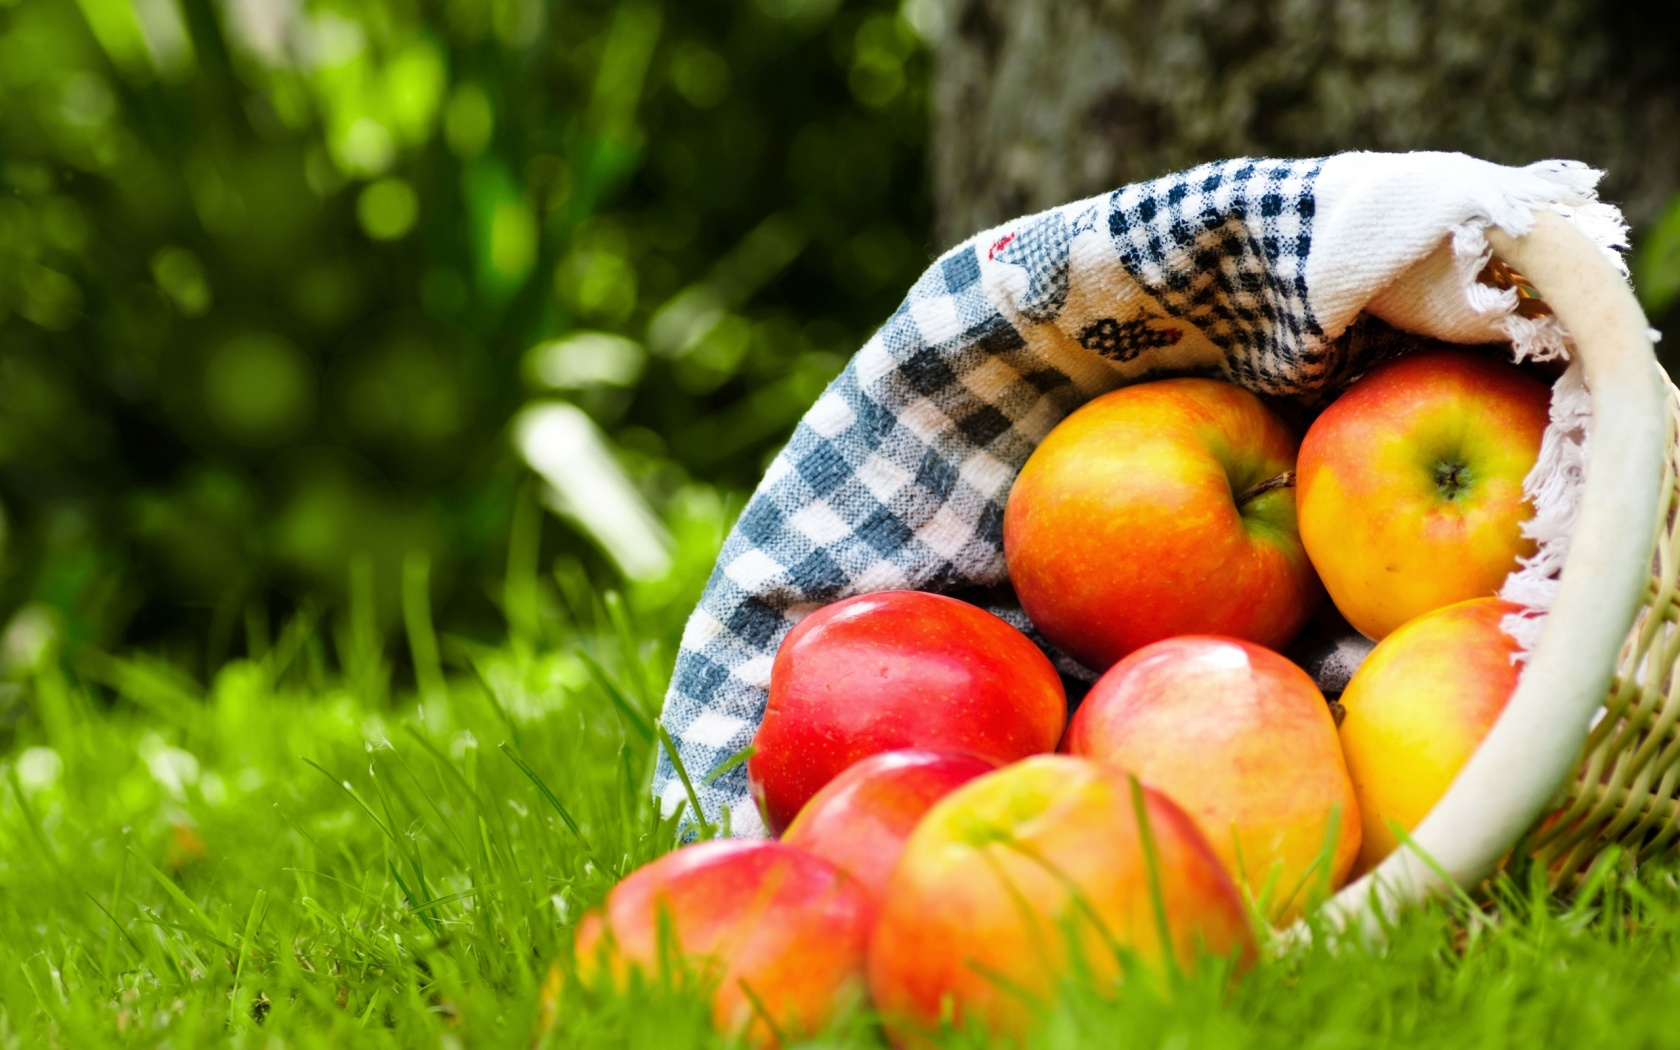 Apples Basket On Grass